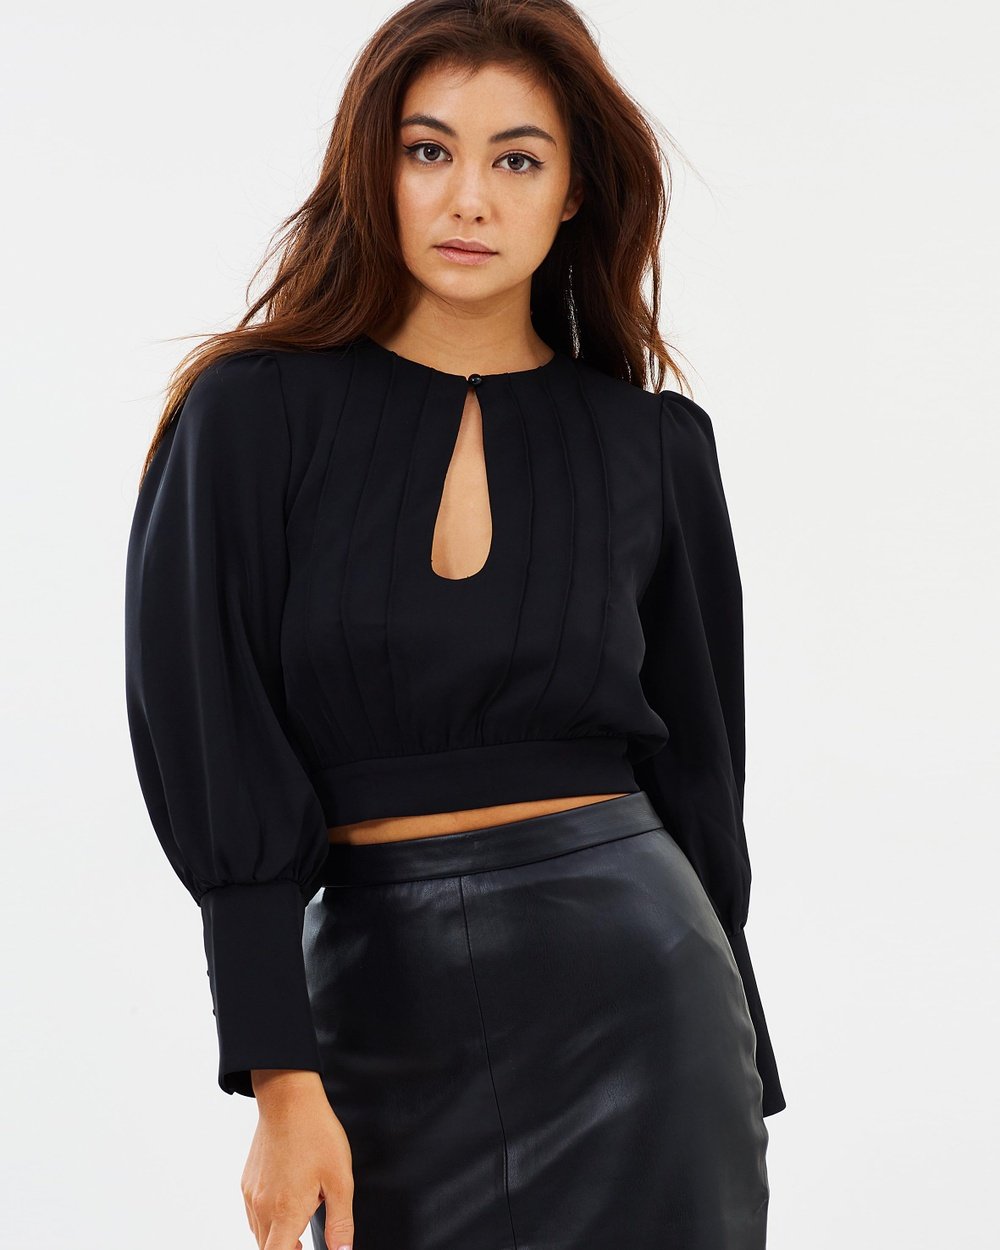 Mossman The Ready Or Not Top Cropped tops Black The Ready Or Not Top